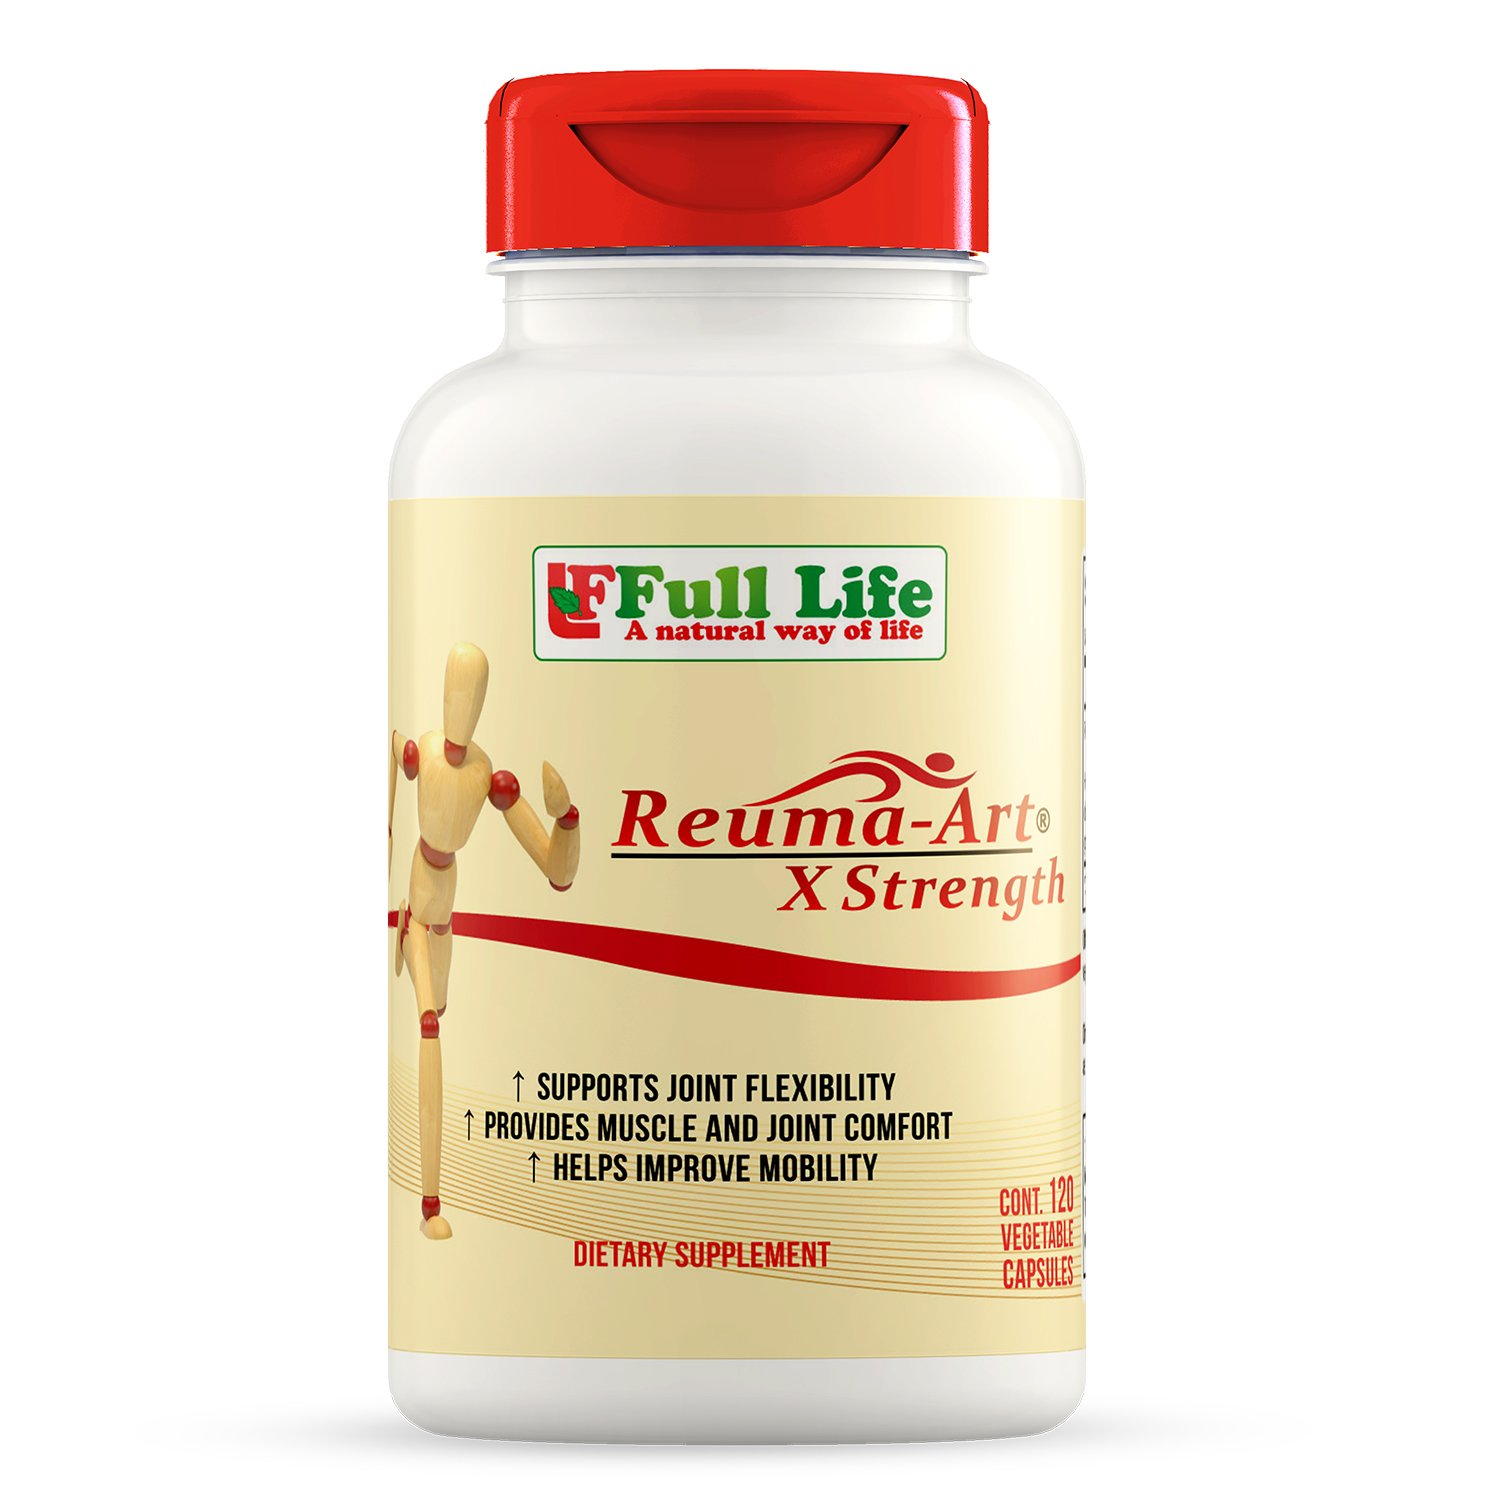 Full Life Reuma-Art X Strength Joint Mobility & Flexibility, 120 Caps by Full Life